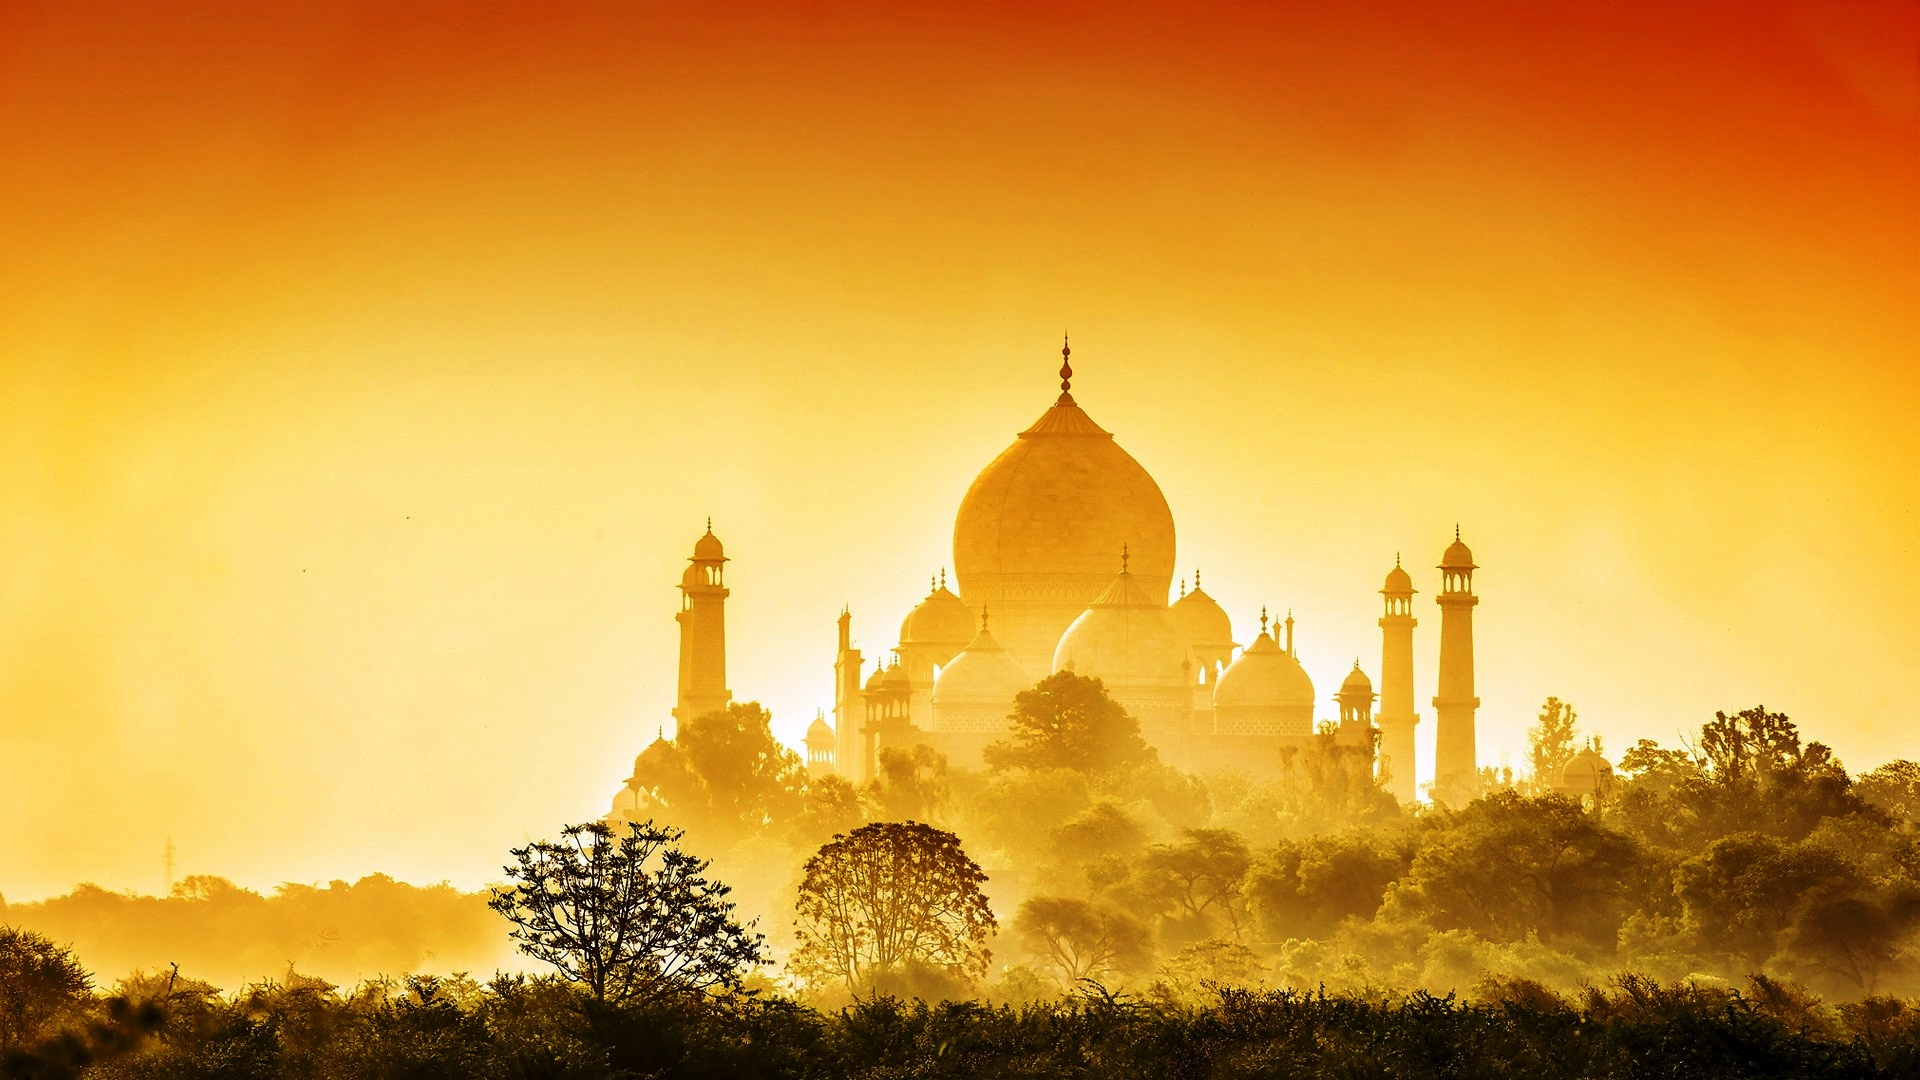 Free Download Tajmahal New Full Hd Images New Hd Wallpapernew Hd Wallpaper 1920x1080 For Your Desktop Mobile Tablet Explore 77 Full Hd Background Images 3d Wallpapers For Desktop Full